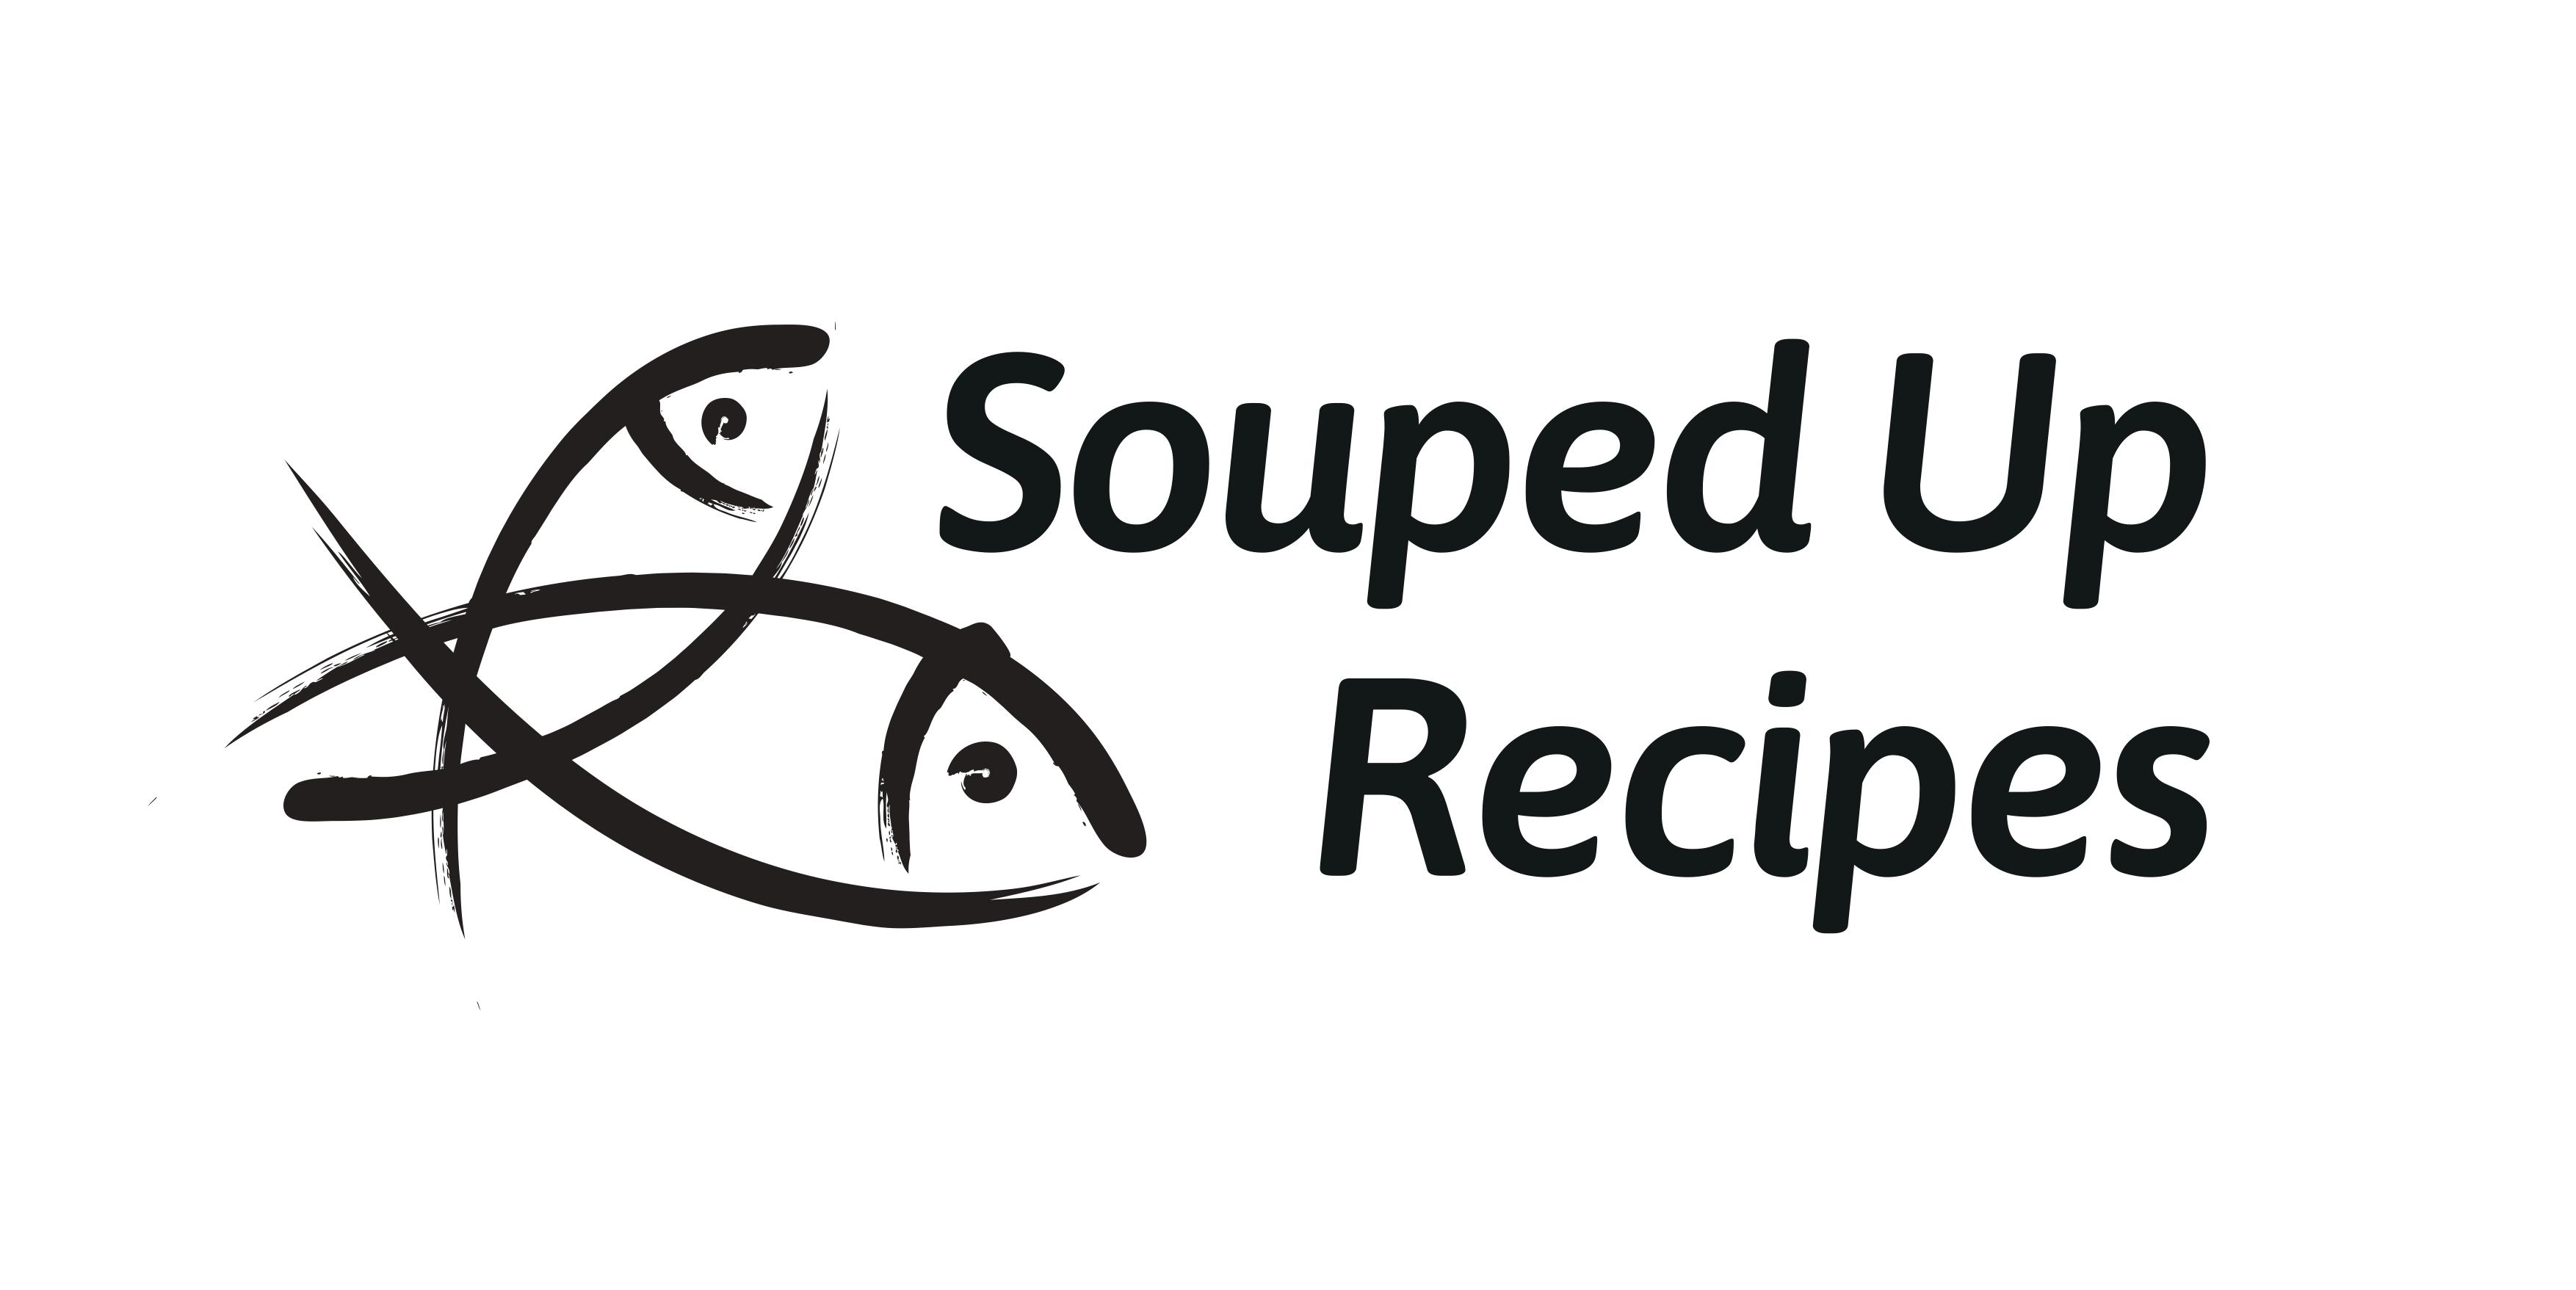 Souped Up Recipes